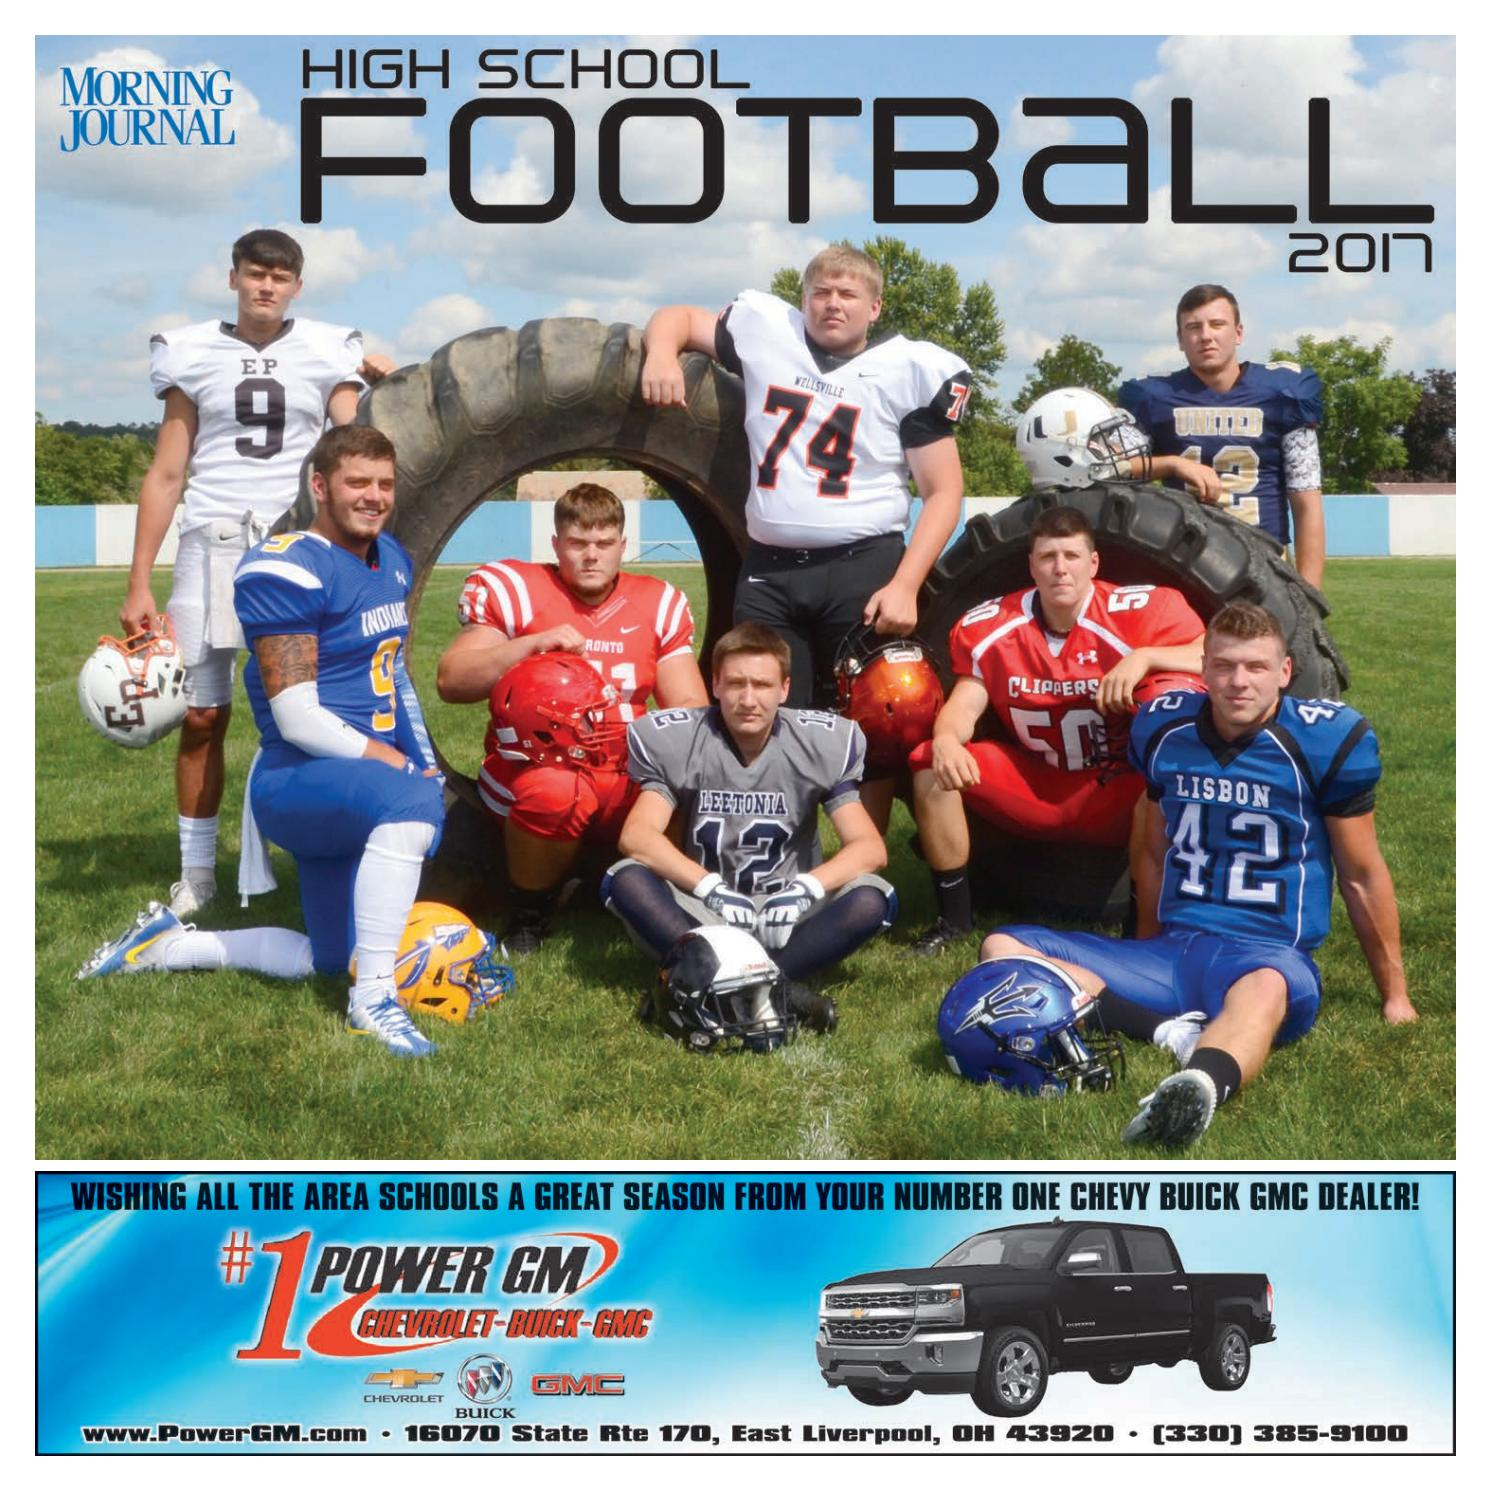 Morning Journal High School Football 2017 by Morning Journal issuu